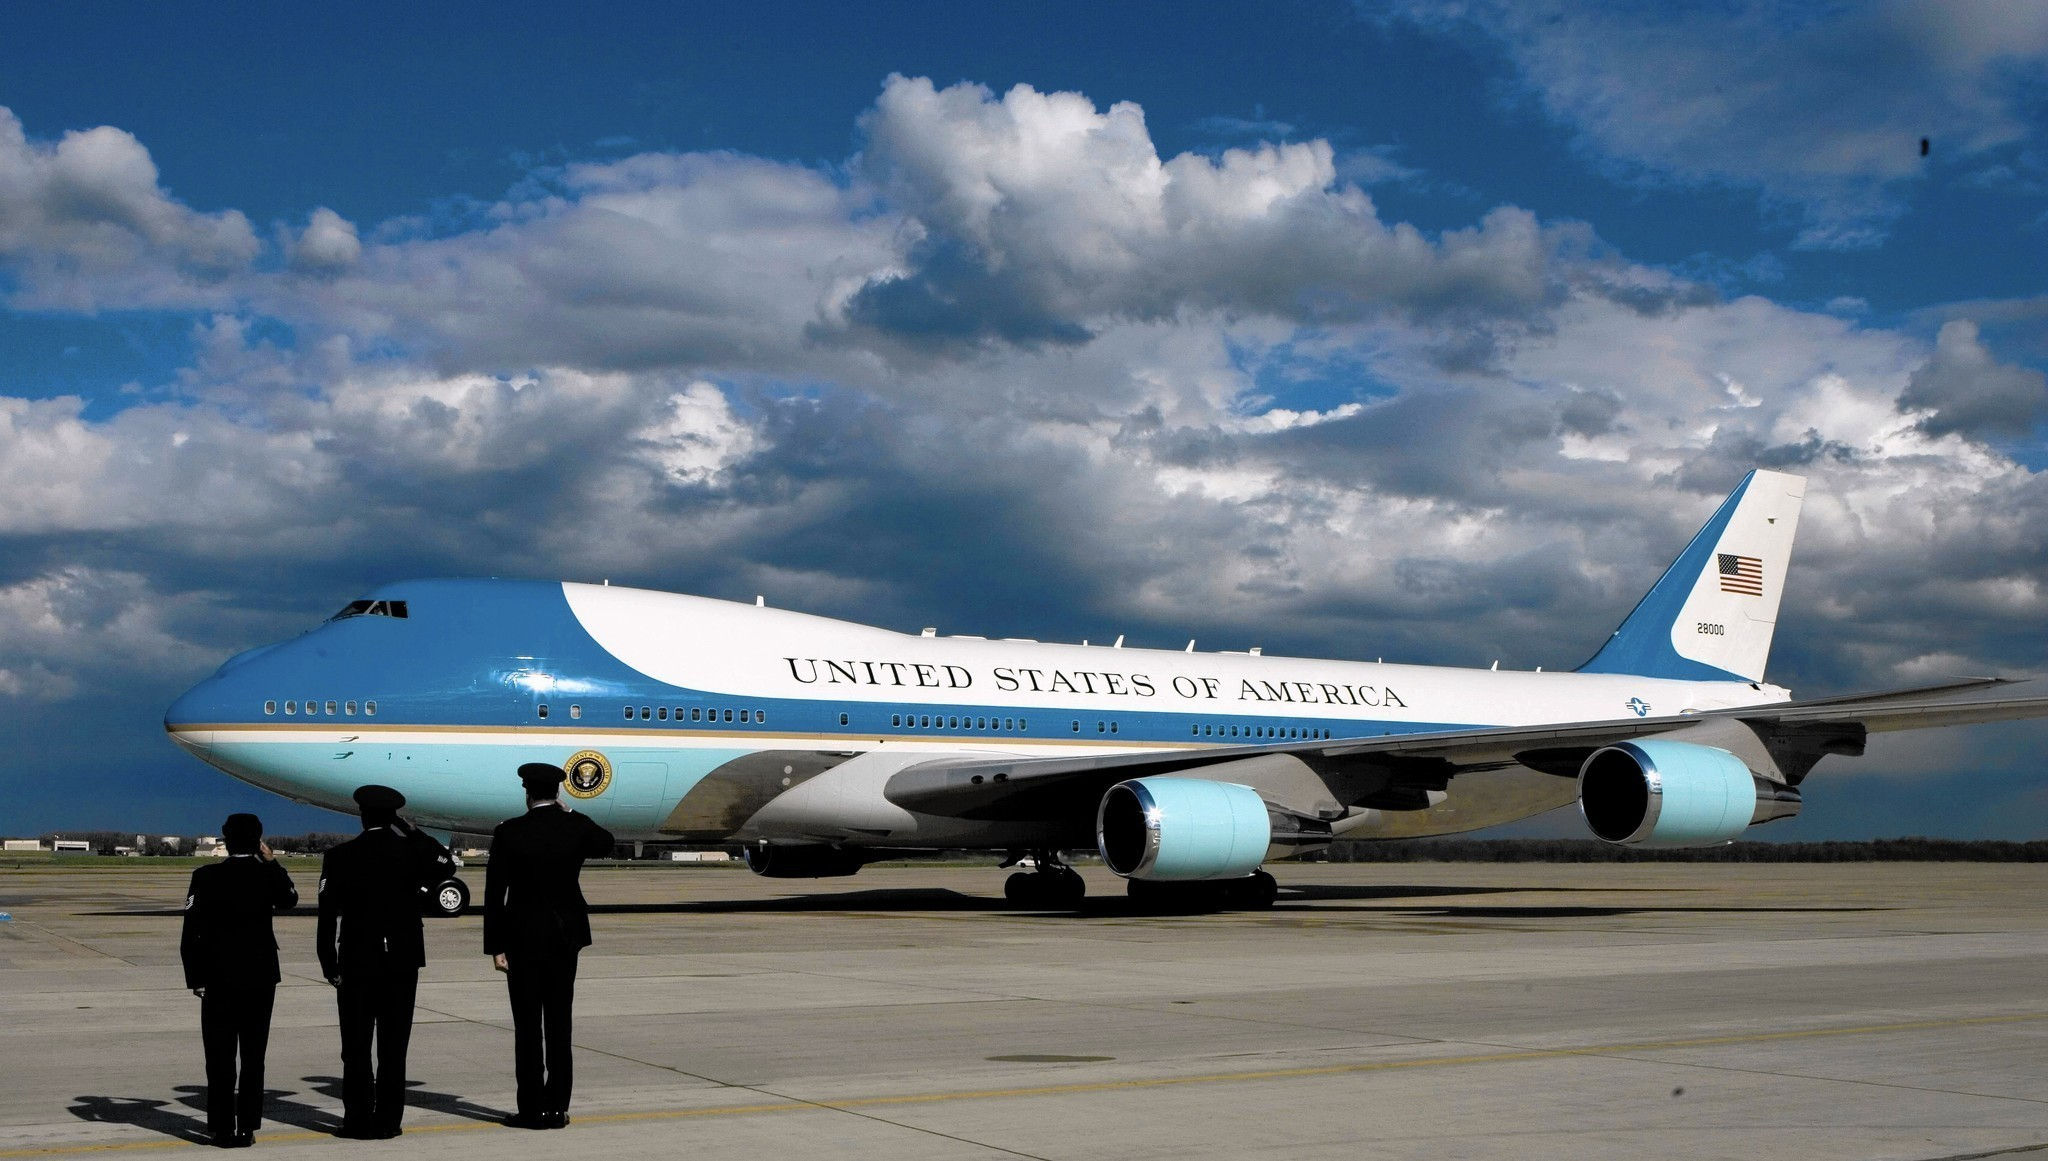 Boeing Mechanics Cause $4 Million Damage Air Force One ...